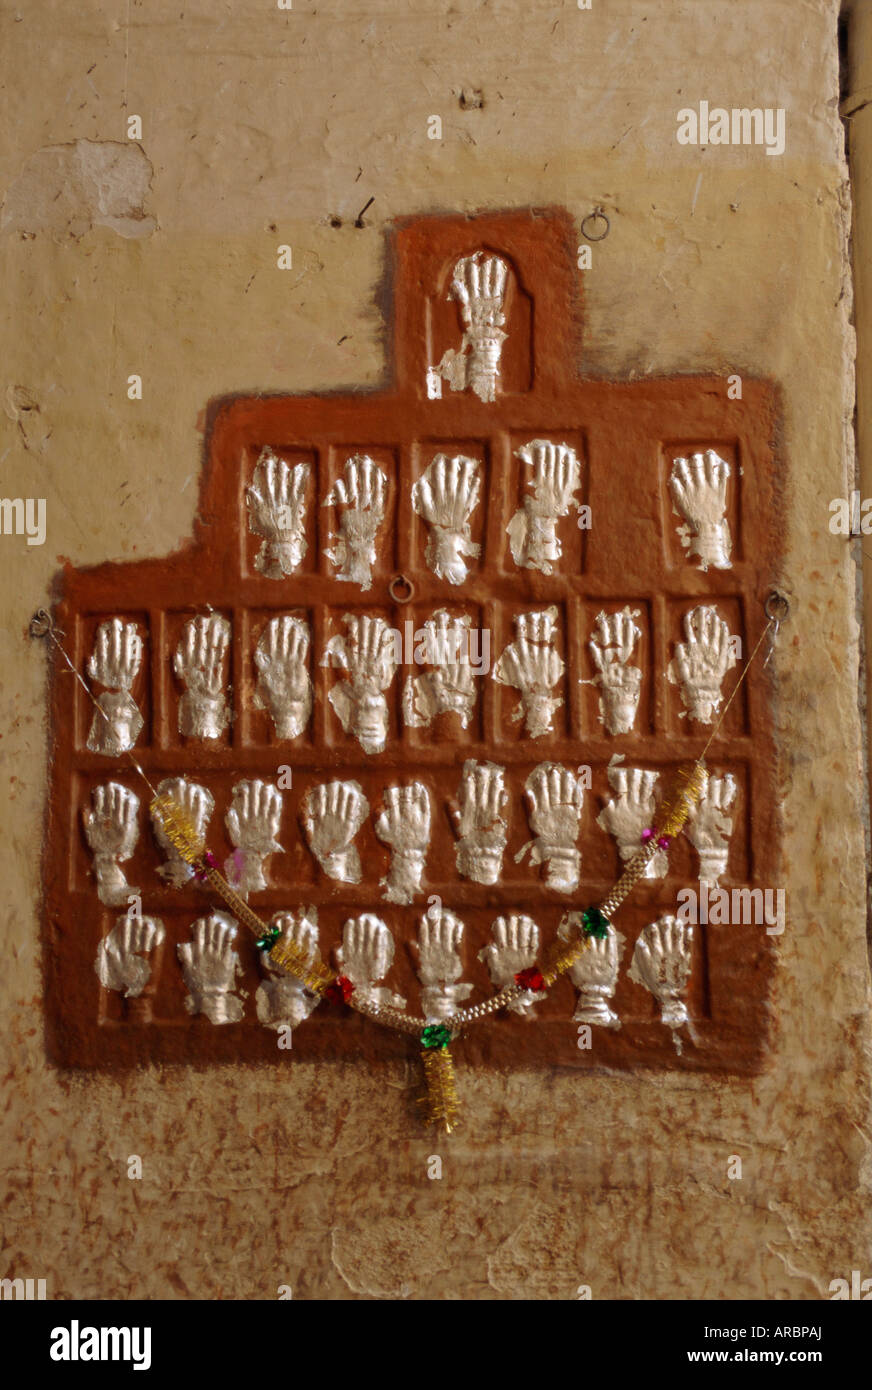 The handprints or Sati marks of ladies who died on the pyres, Jodhpur, Rajasthan, India - Stock Image